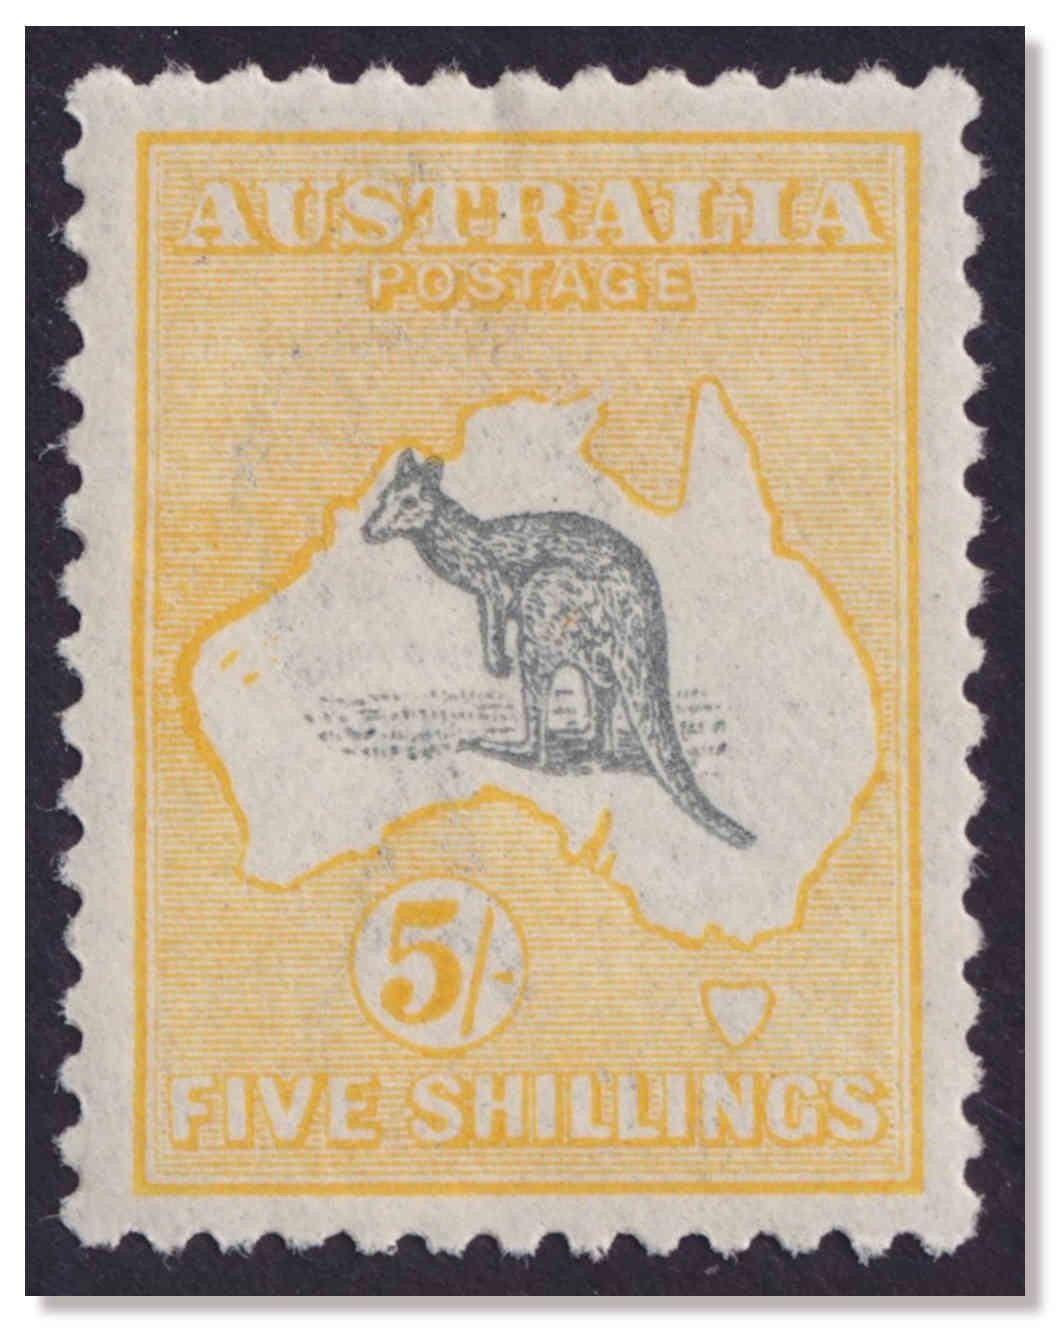 1918 Third Watermark 5/- Kangaroo Superb MVLH, with Striking Error: This  variety is almost never seen offered - have had not had this one for  decades.